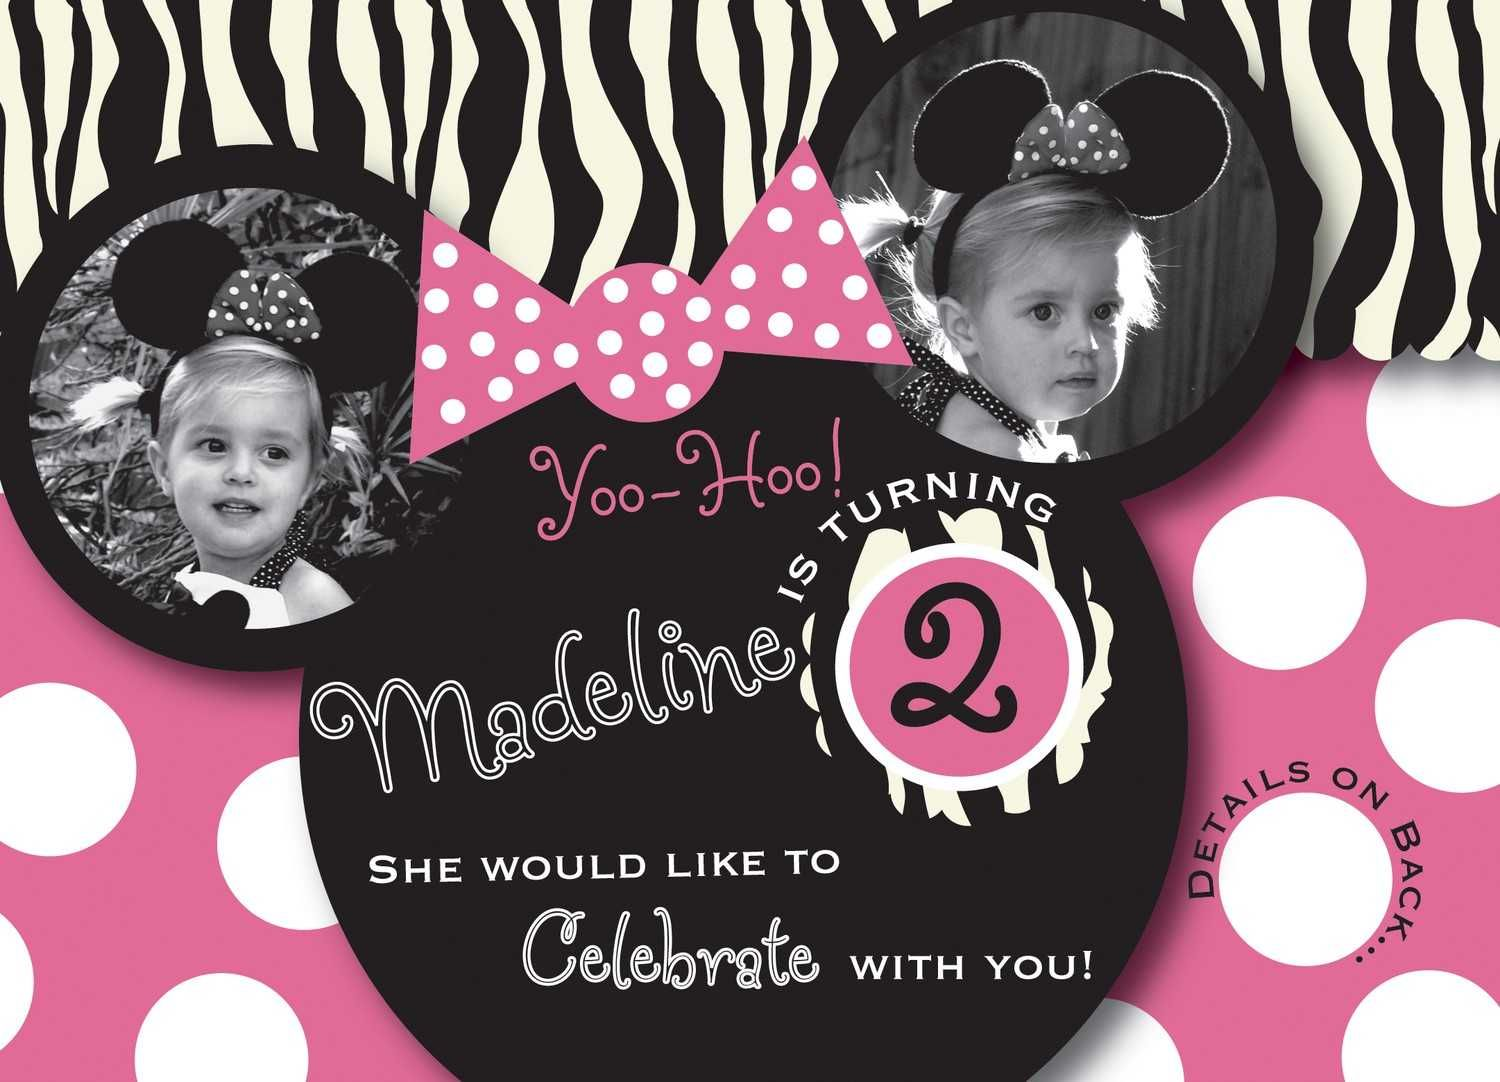 Minnie mouse birthday party ideas google search ideas for minnie mouse birthday party ideas google search solutioingenieria Images